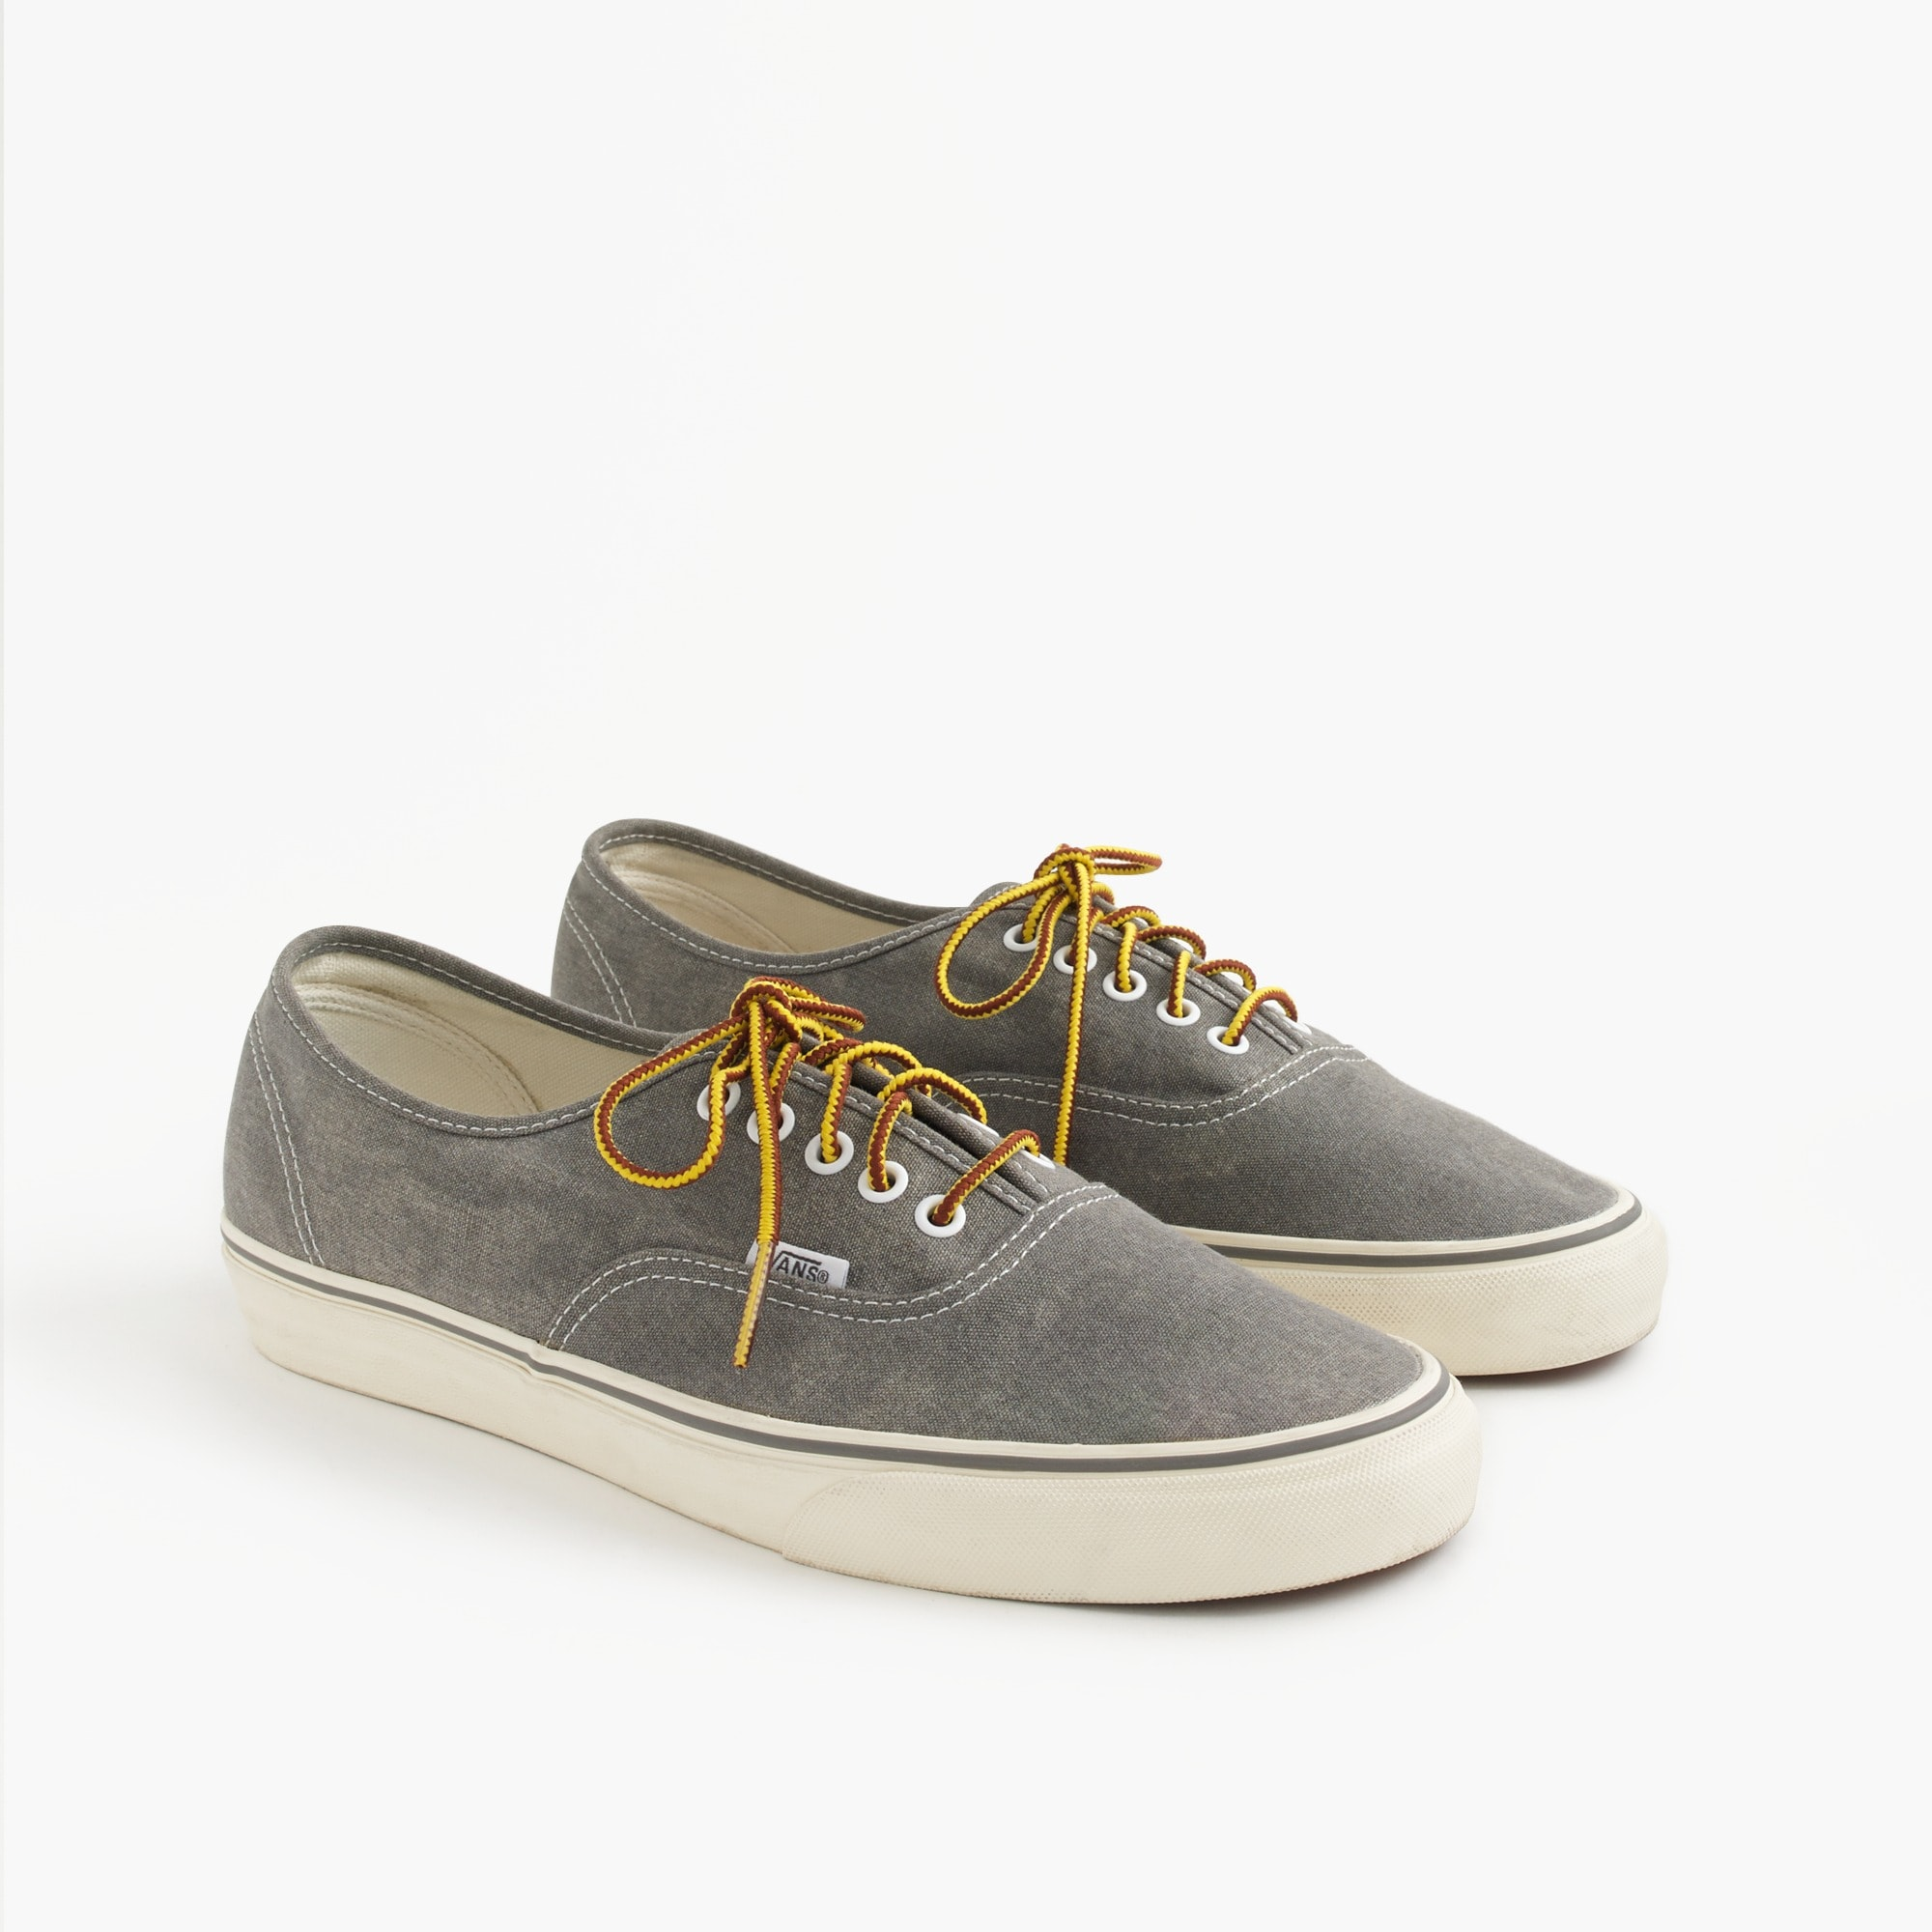 Vans® for J.Crew washed canvas authentic sneakers